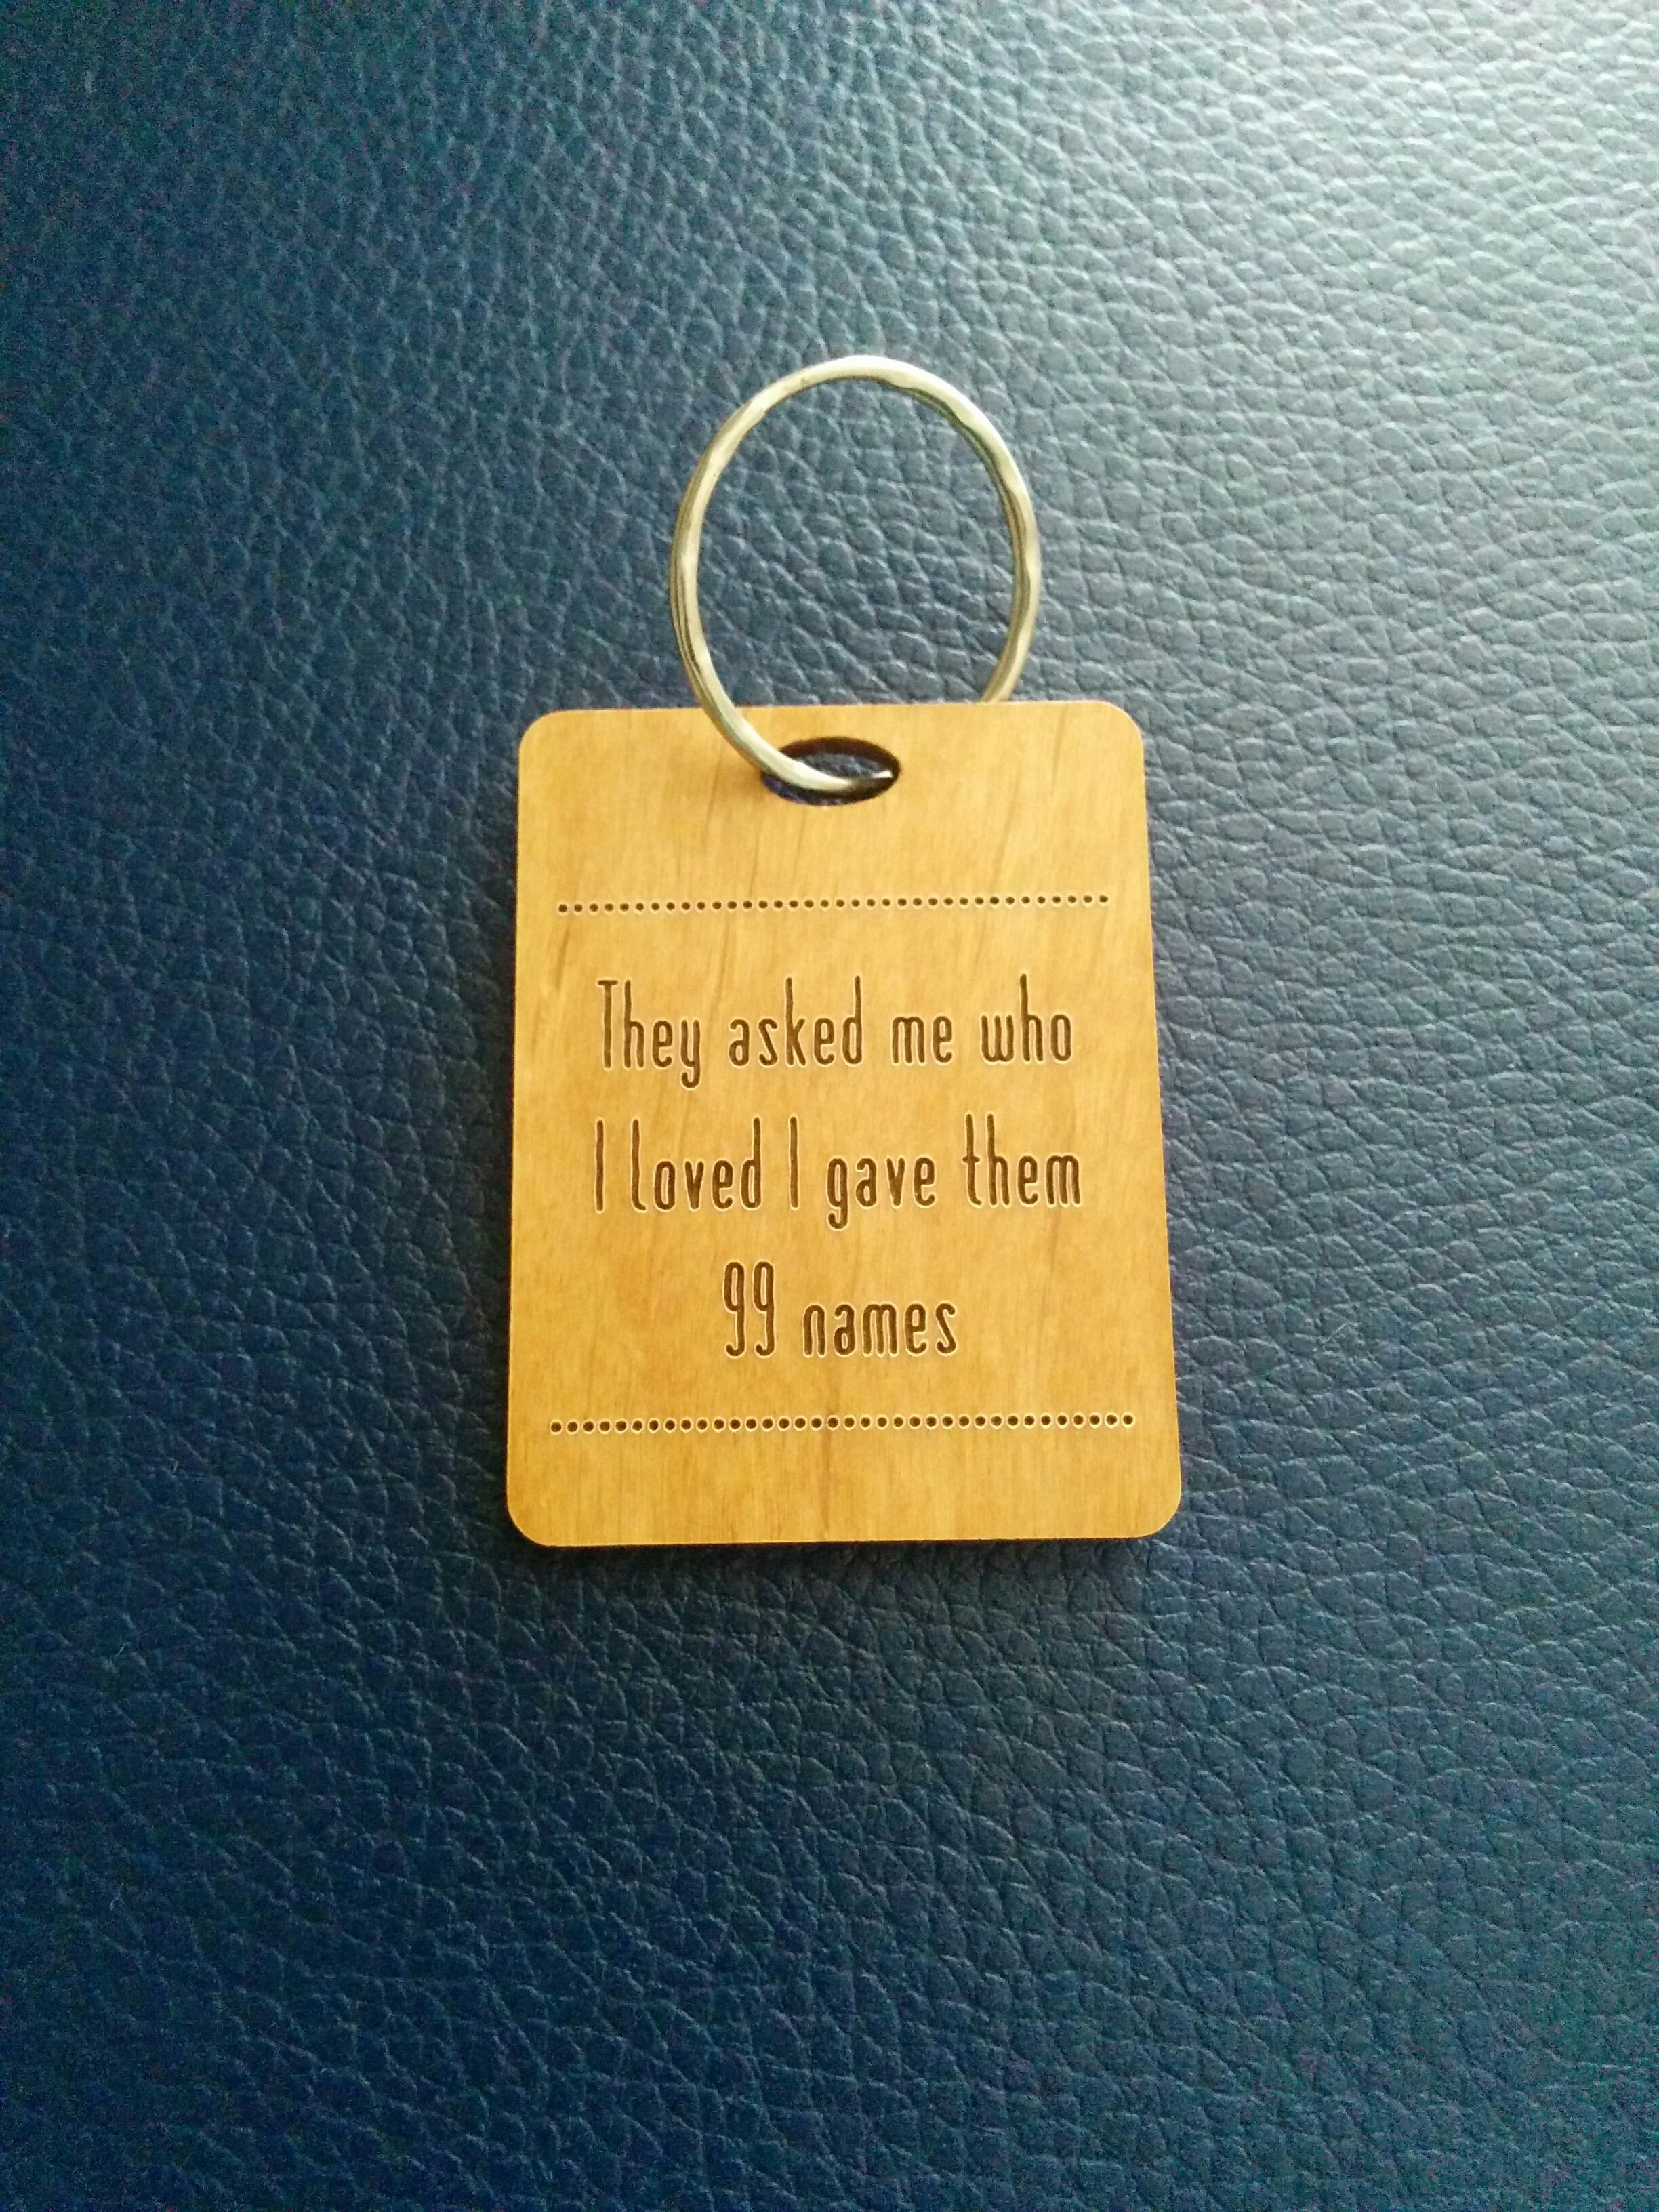 Thoughtful Gift Ideas 16: THIS keyring!